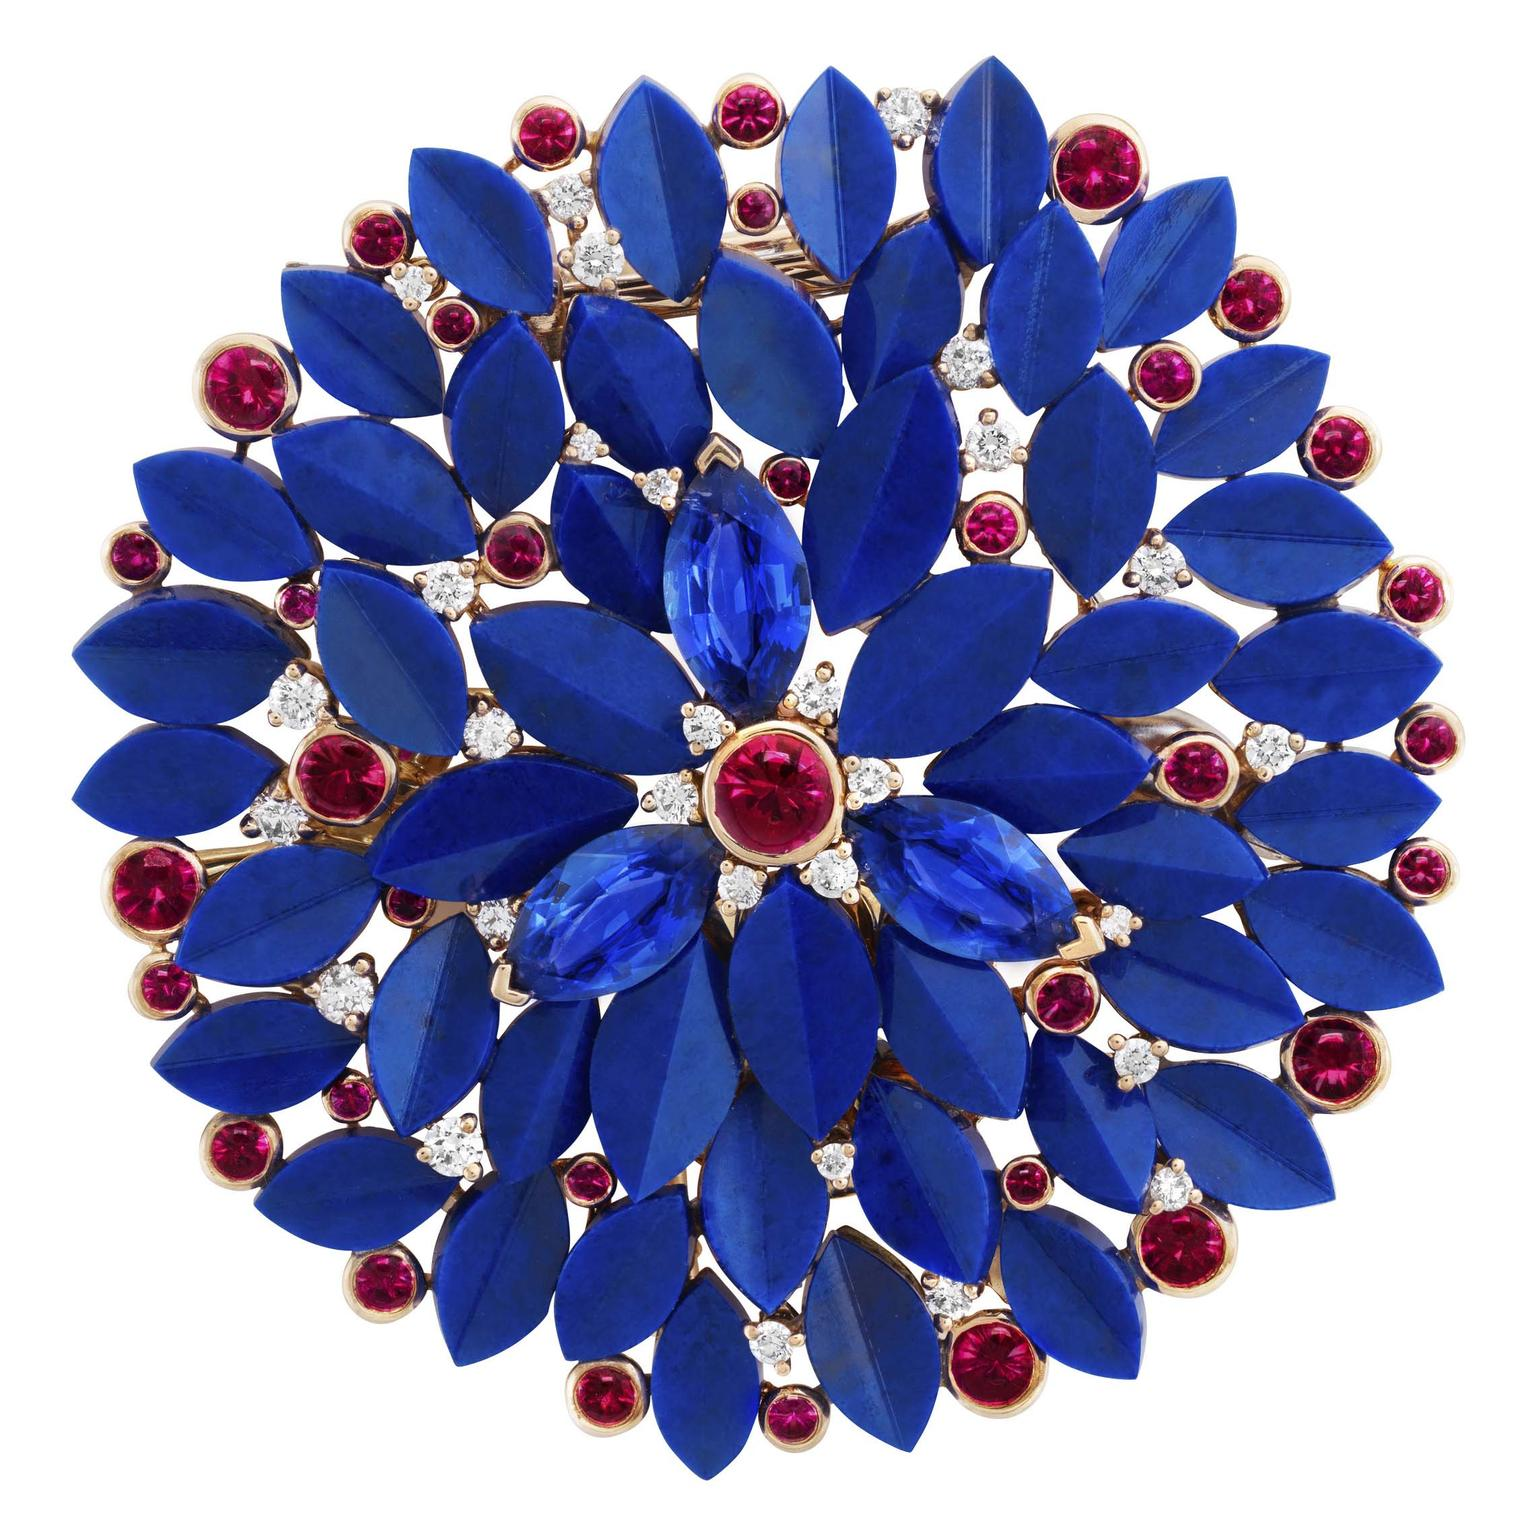 Van Cleef & Arpels Night or Day clip